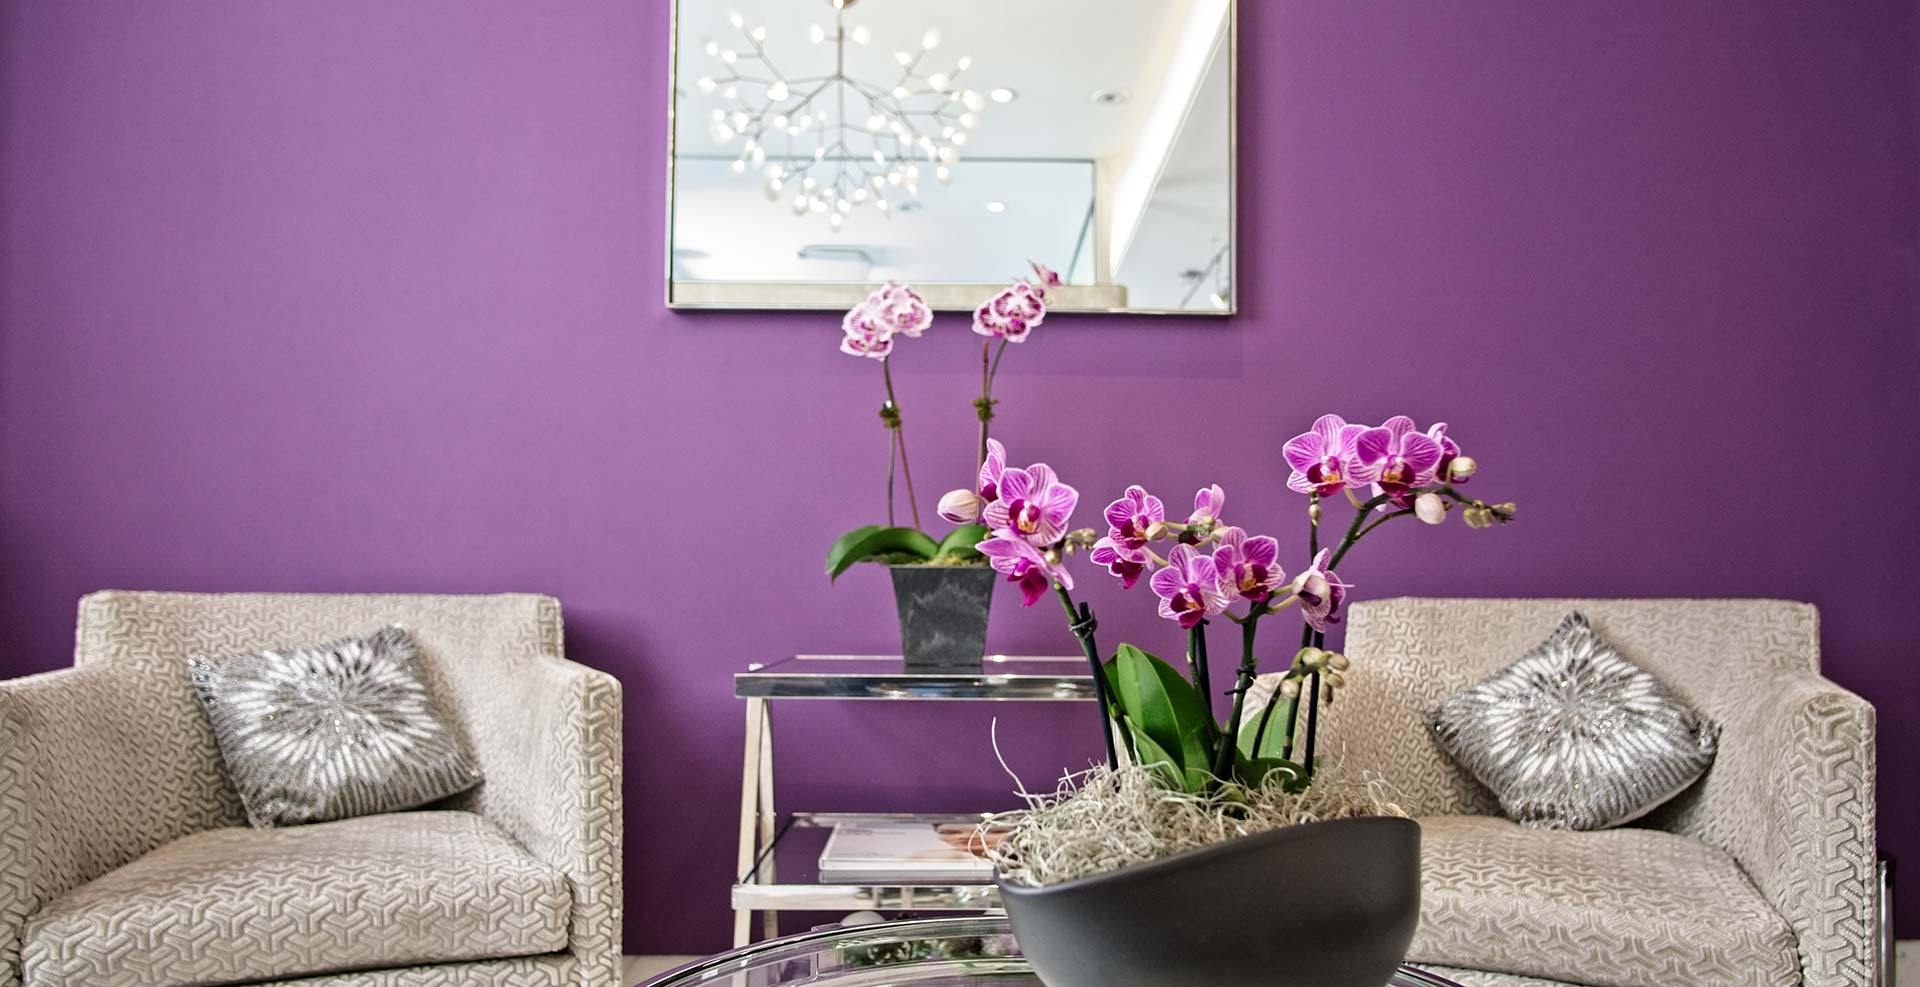 Maurice M. Khosh, MD, FACS office lobby. Purple walls, mirror, an orchid on a beautiful table.